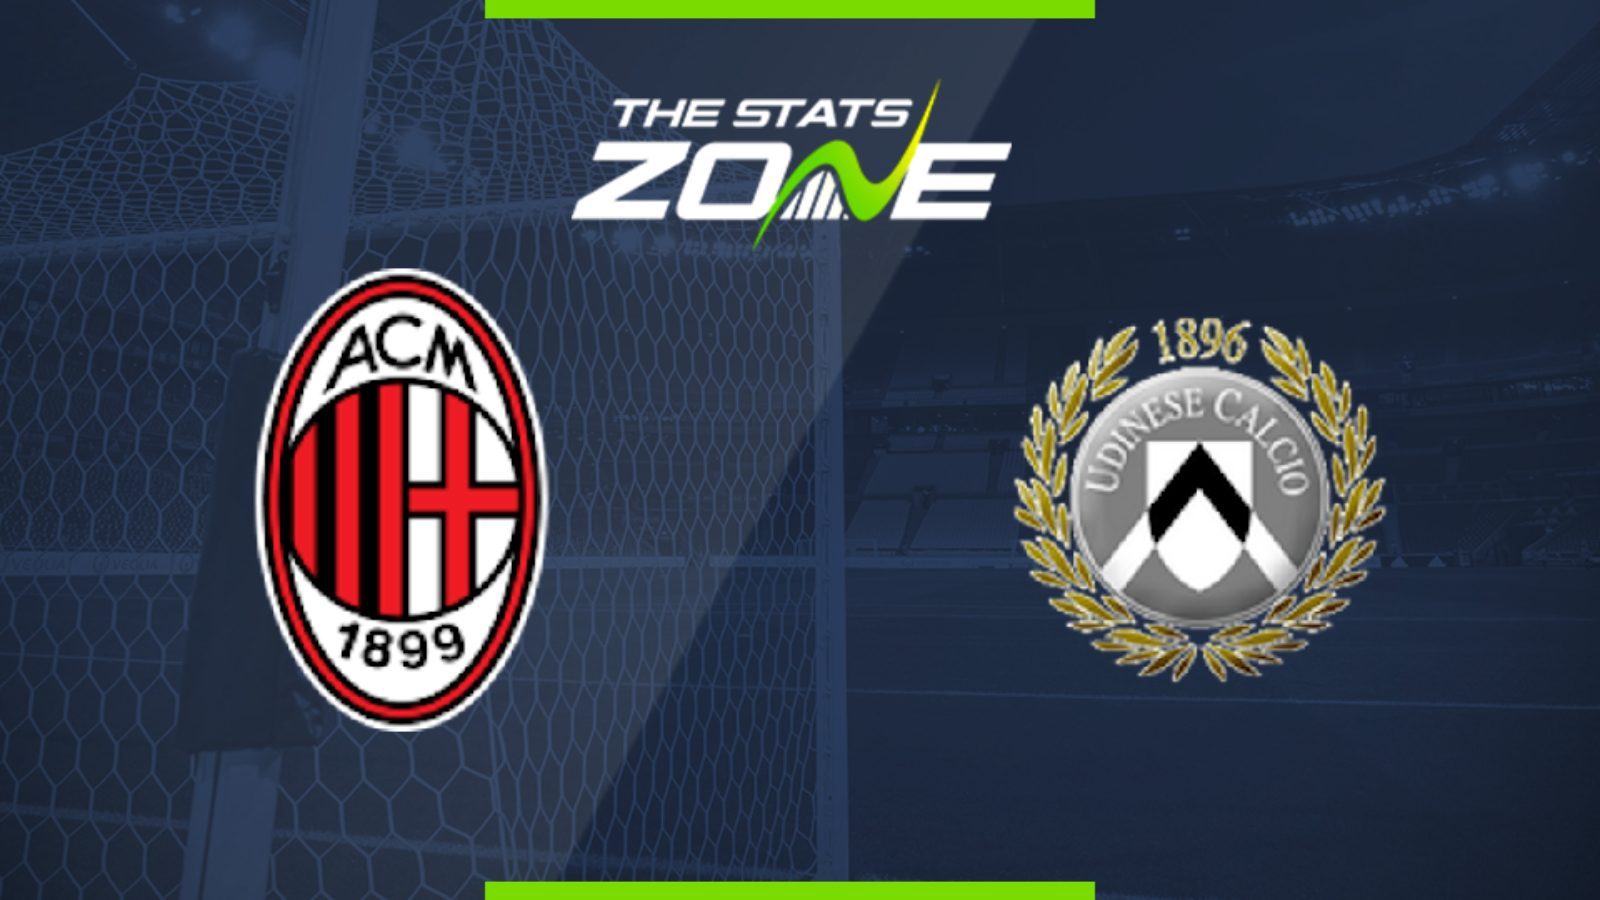 2019 20 Serie A Ac Milan Vs Udinese Preview Prediction The Stats Zone